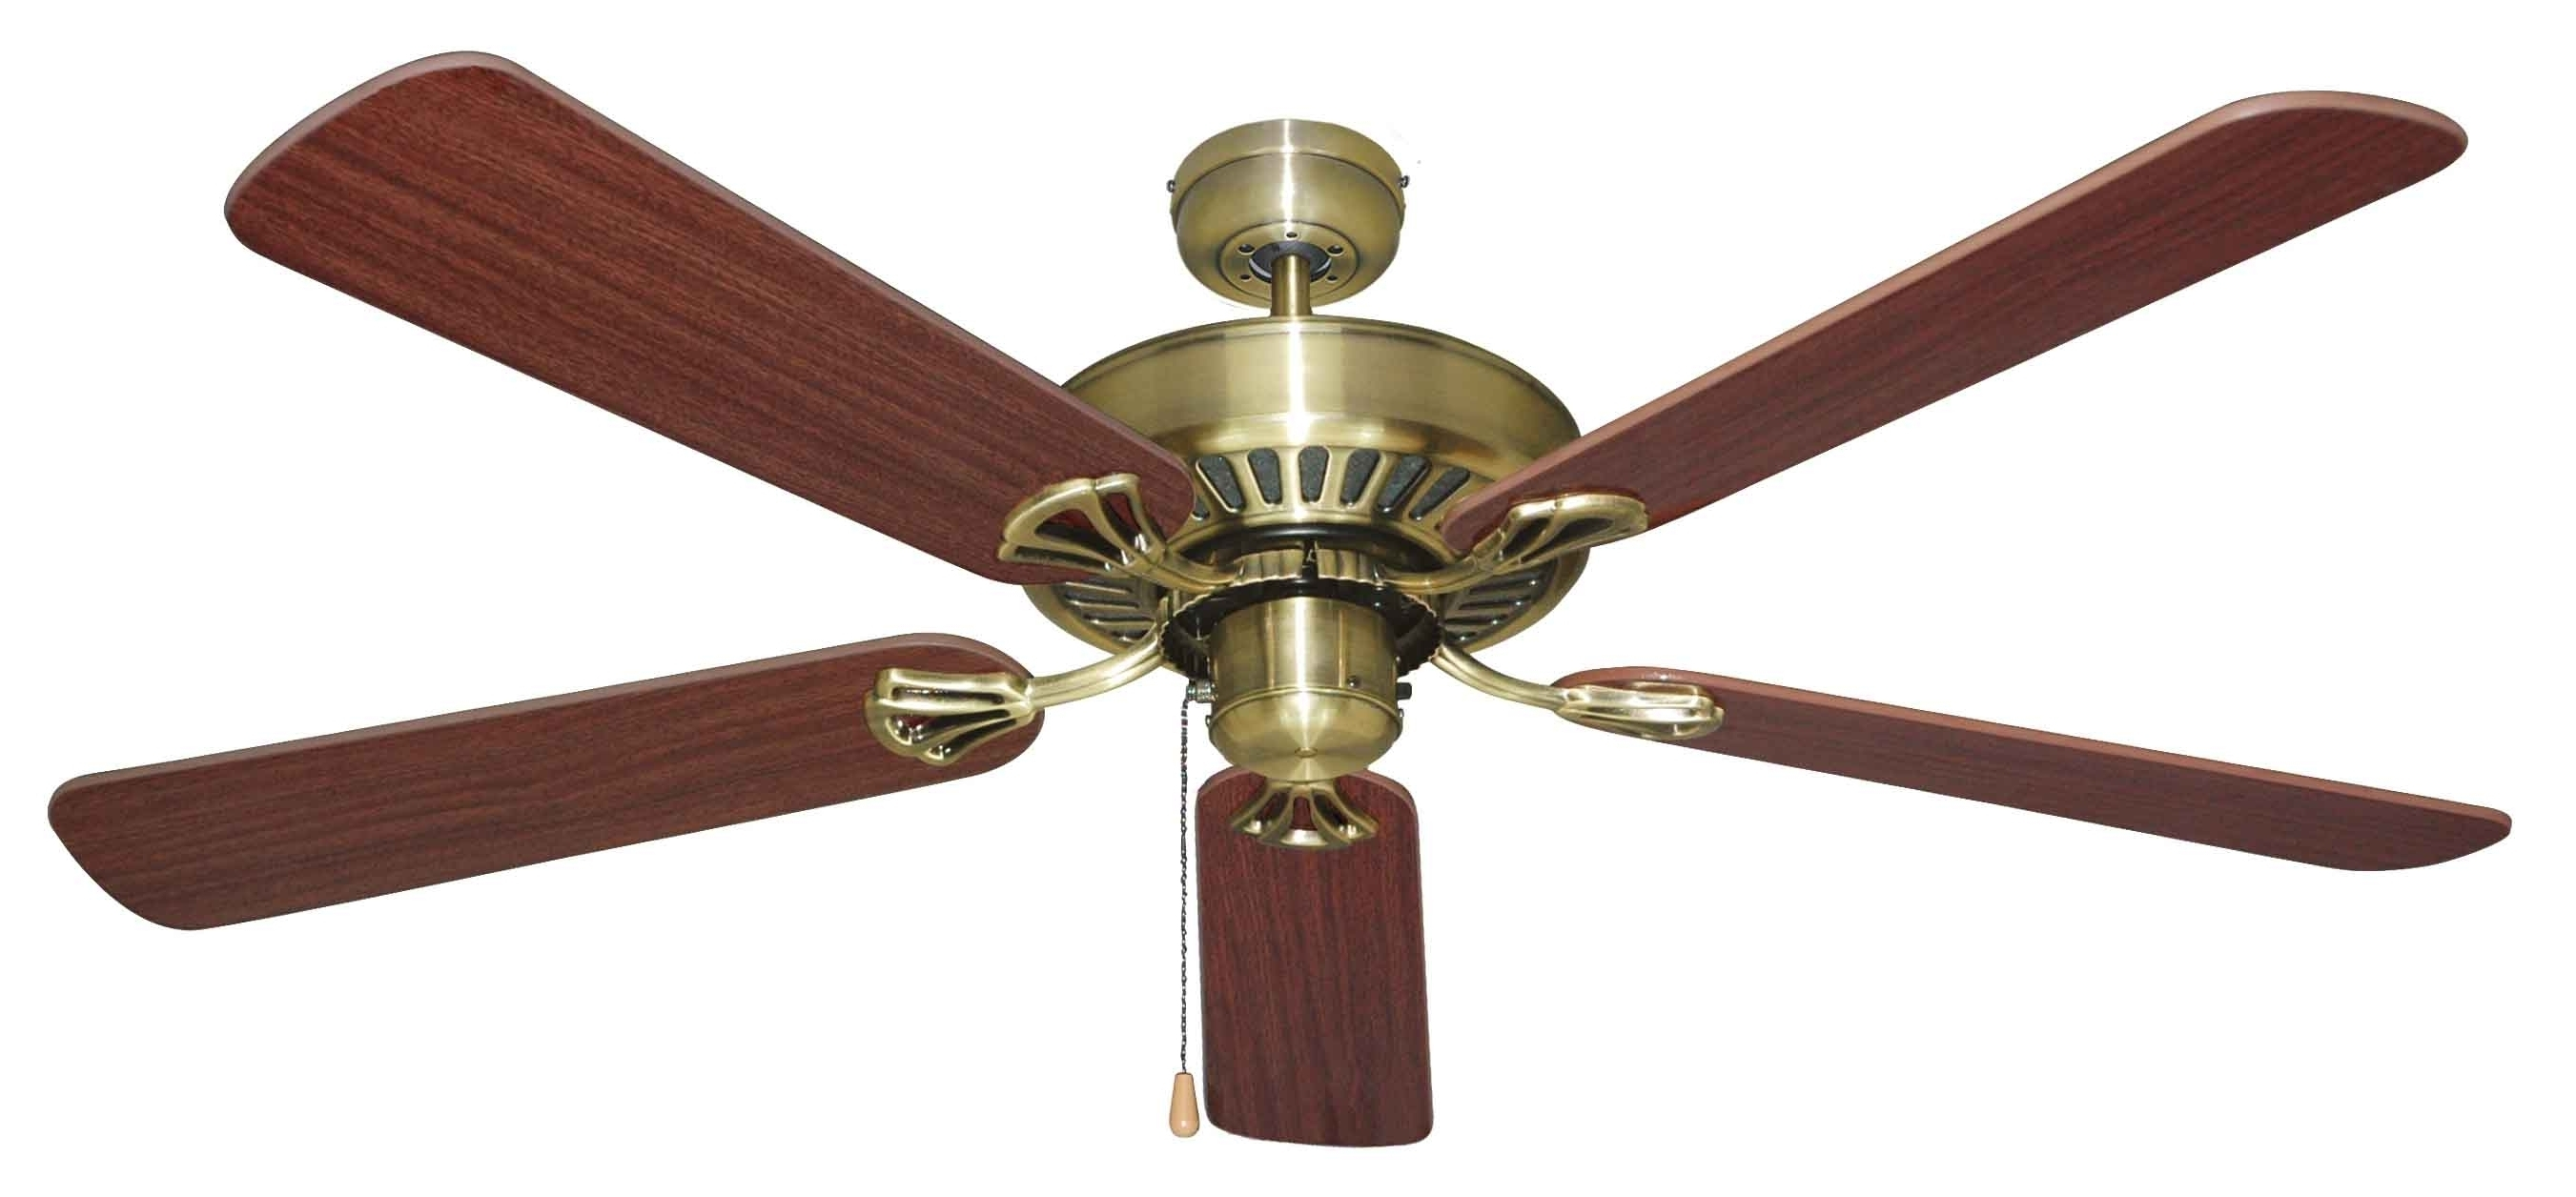 Mercator Ceiling Fans Bunnings • Ceiling Fans Ideas For 2019 Outdoor Ceiling Fans At Bunnings (View 18 of 20)